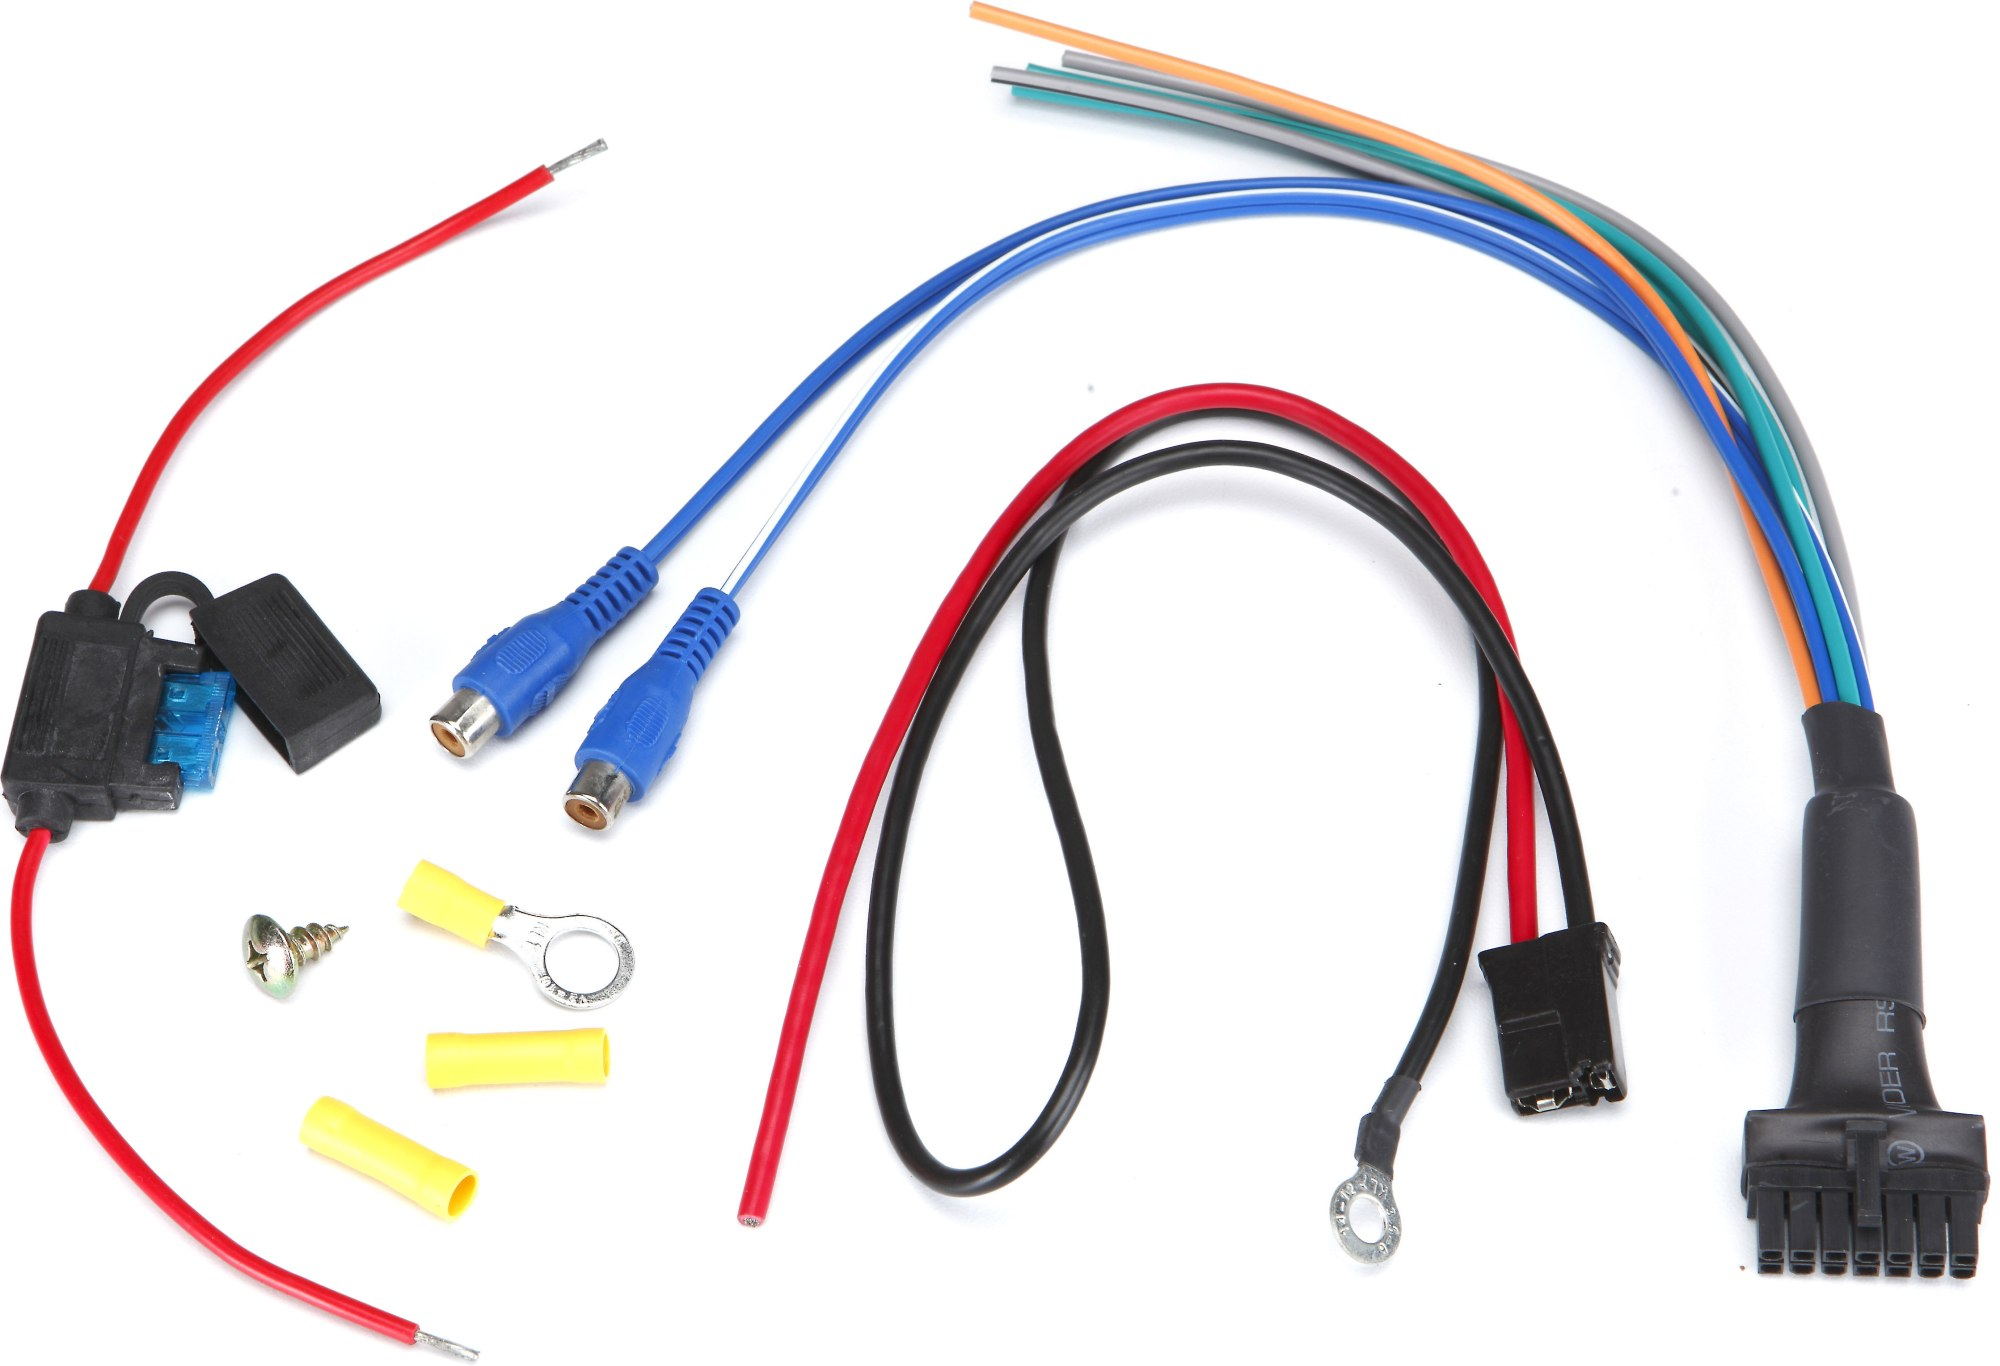 hight resolution of sas bazooka rsa hp awk amp wiring kit replacement wiring kit for rs series amplified bazooka tubes enclosures at crutchfield com